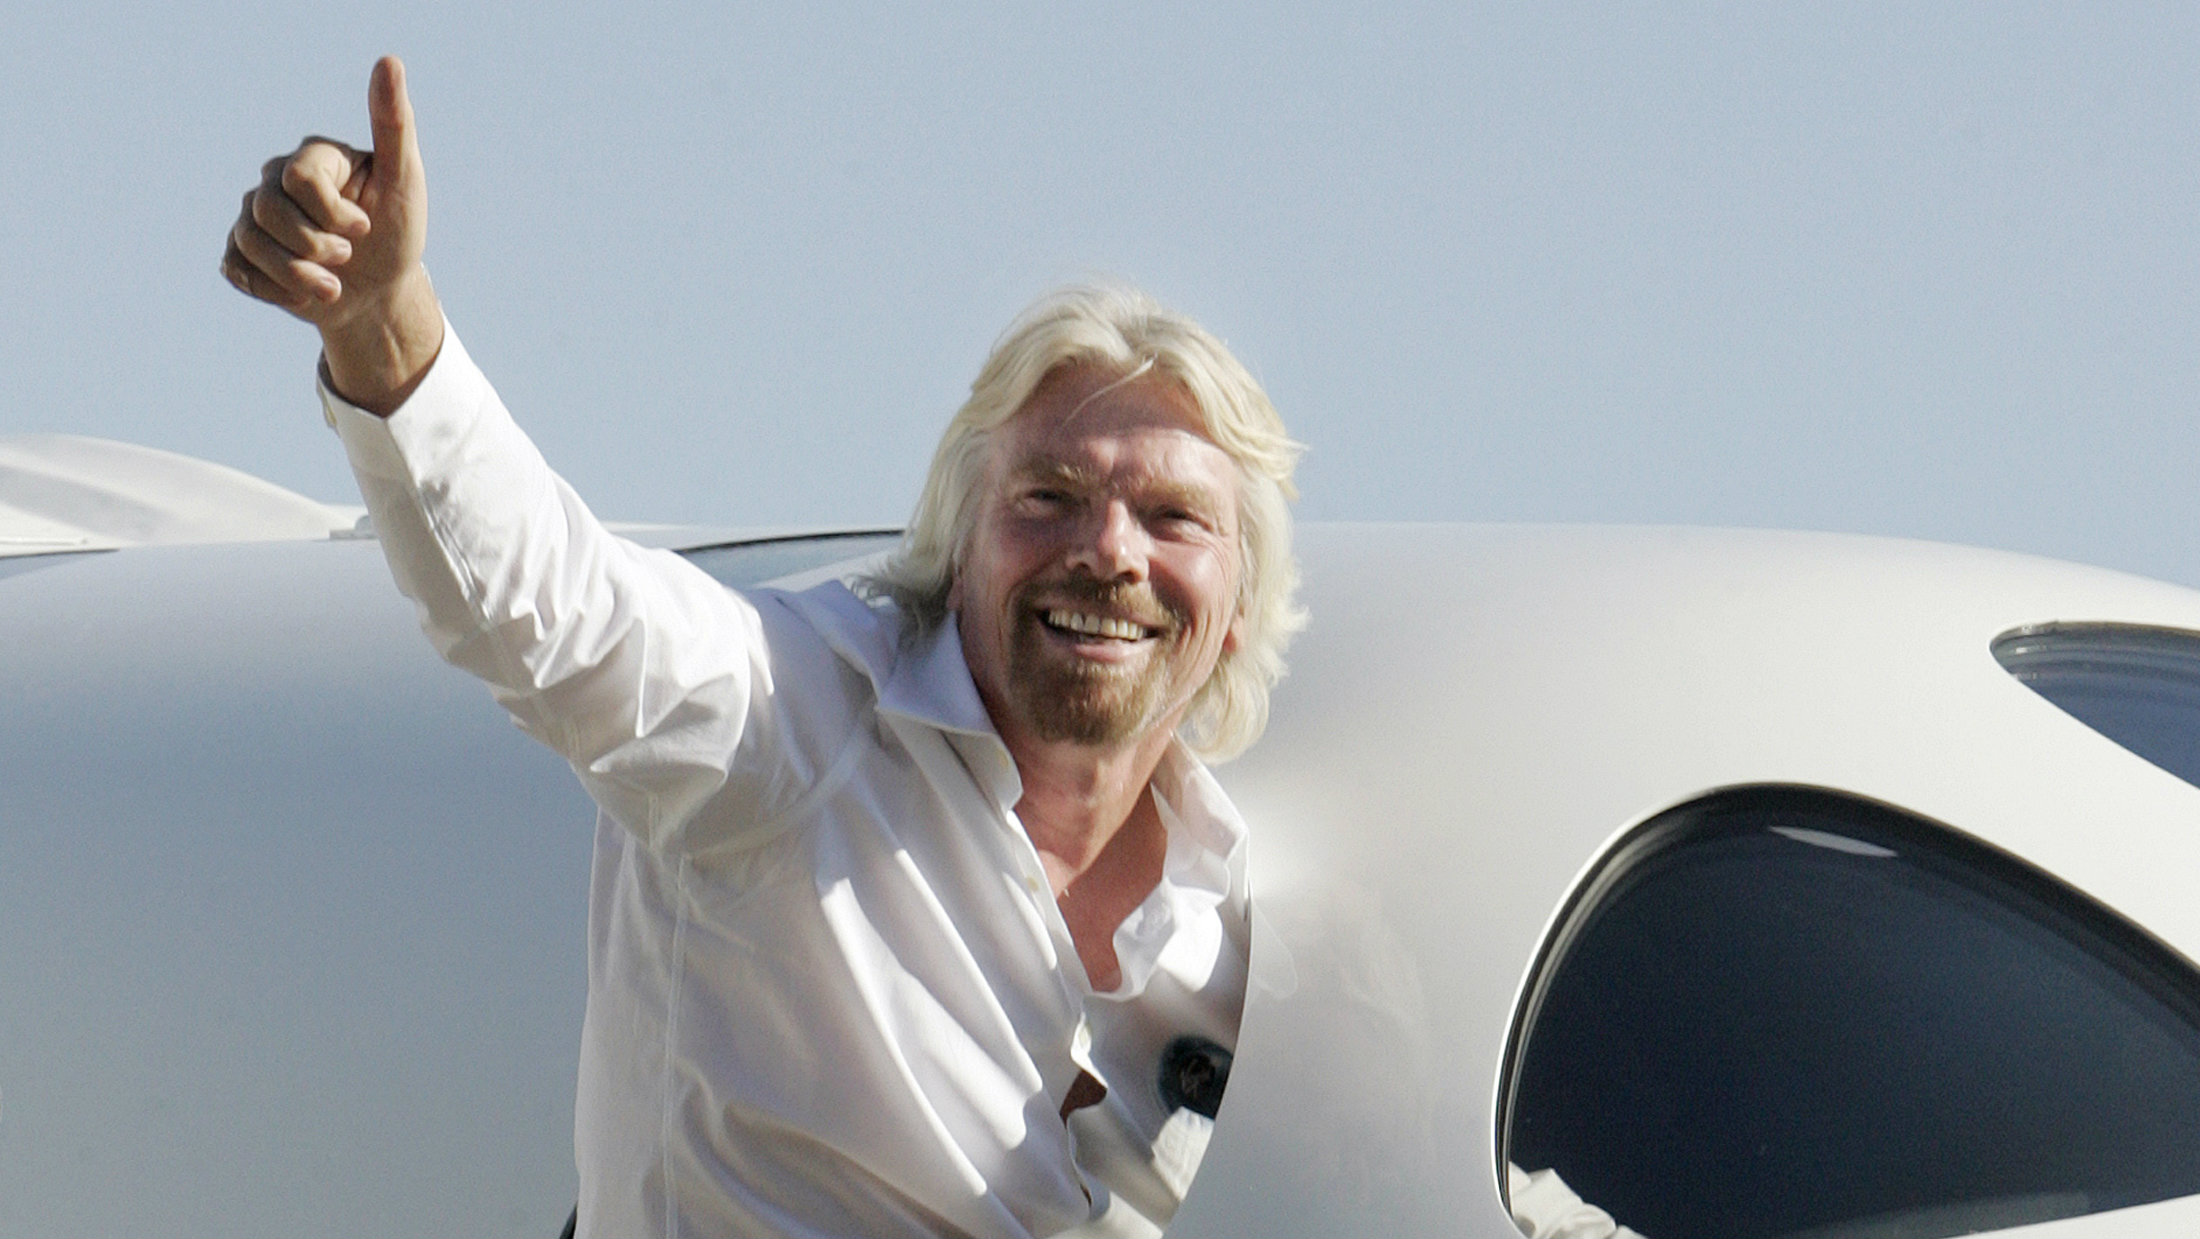 Virgin Group's Founder billionaire Richard Branson waves from the window of Virgin Galactic's mothership WhiteKnightTwo during its public roll-out in Mojave, California July 28, 2008